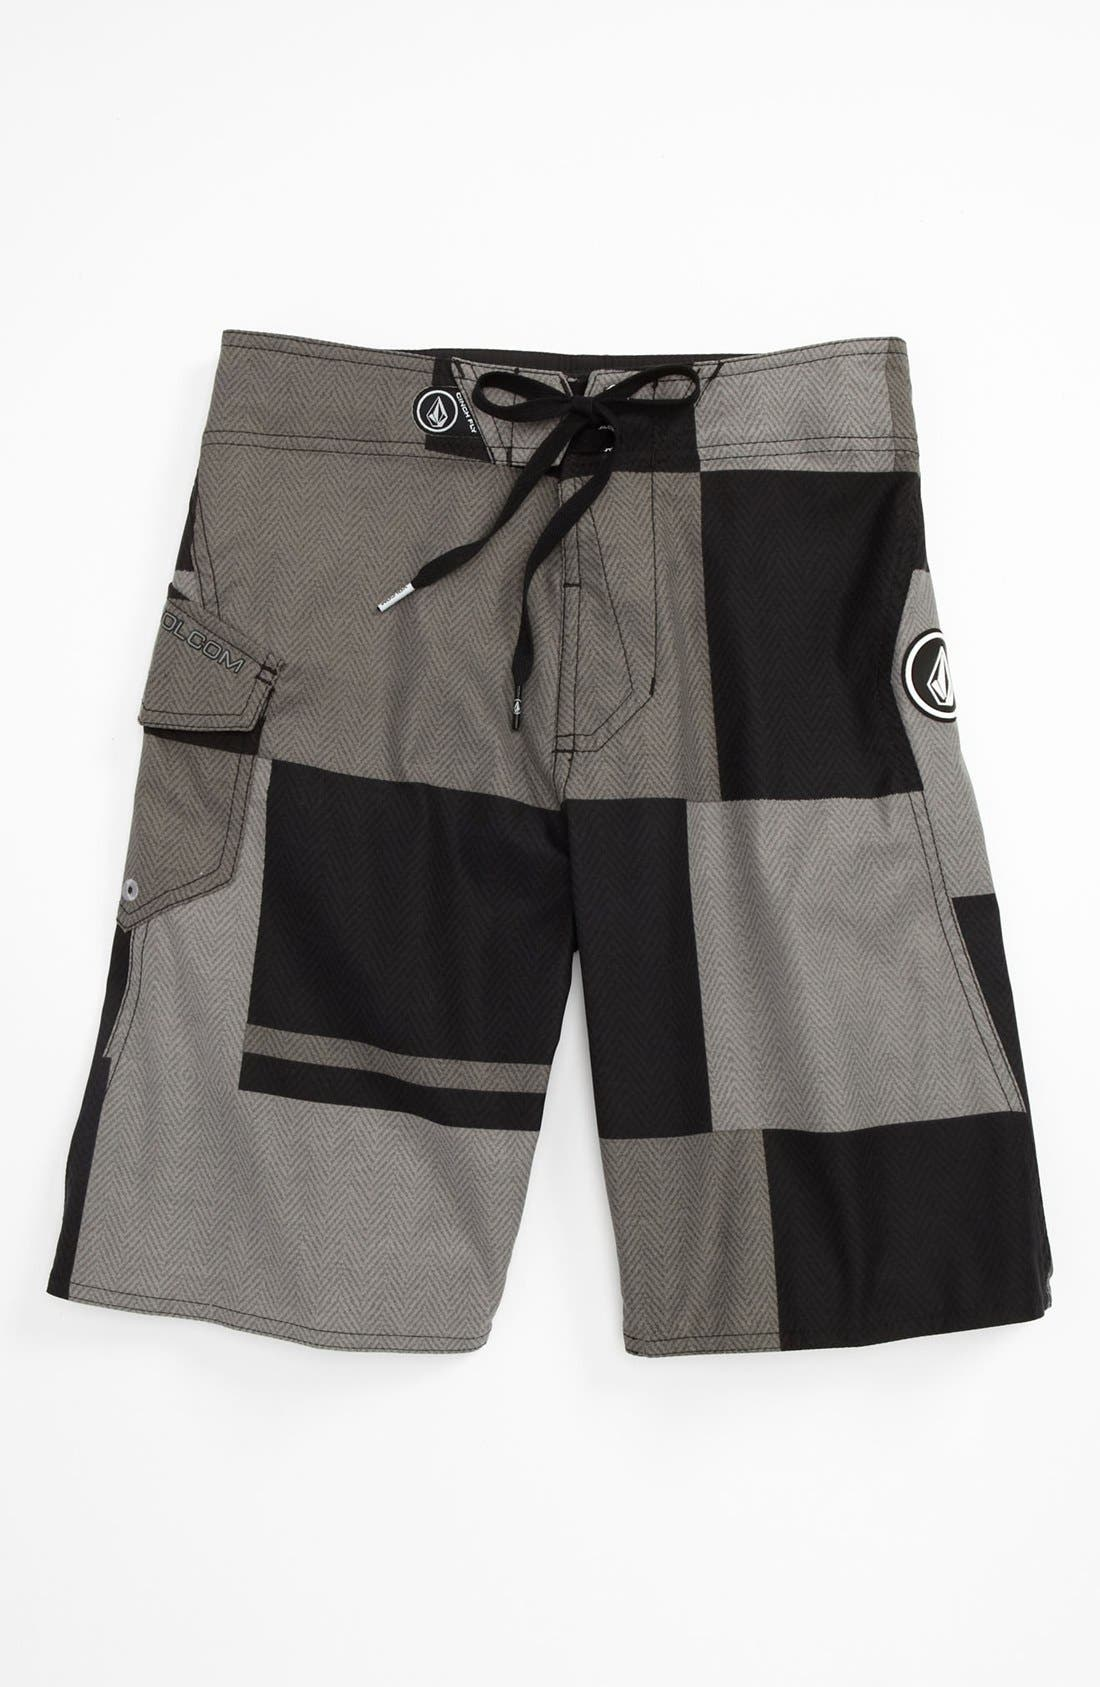 Alternate Image 1 Selected - Volcom 'Maguro' Colorblocked Board Shorts (Big Boys)